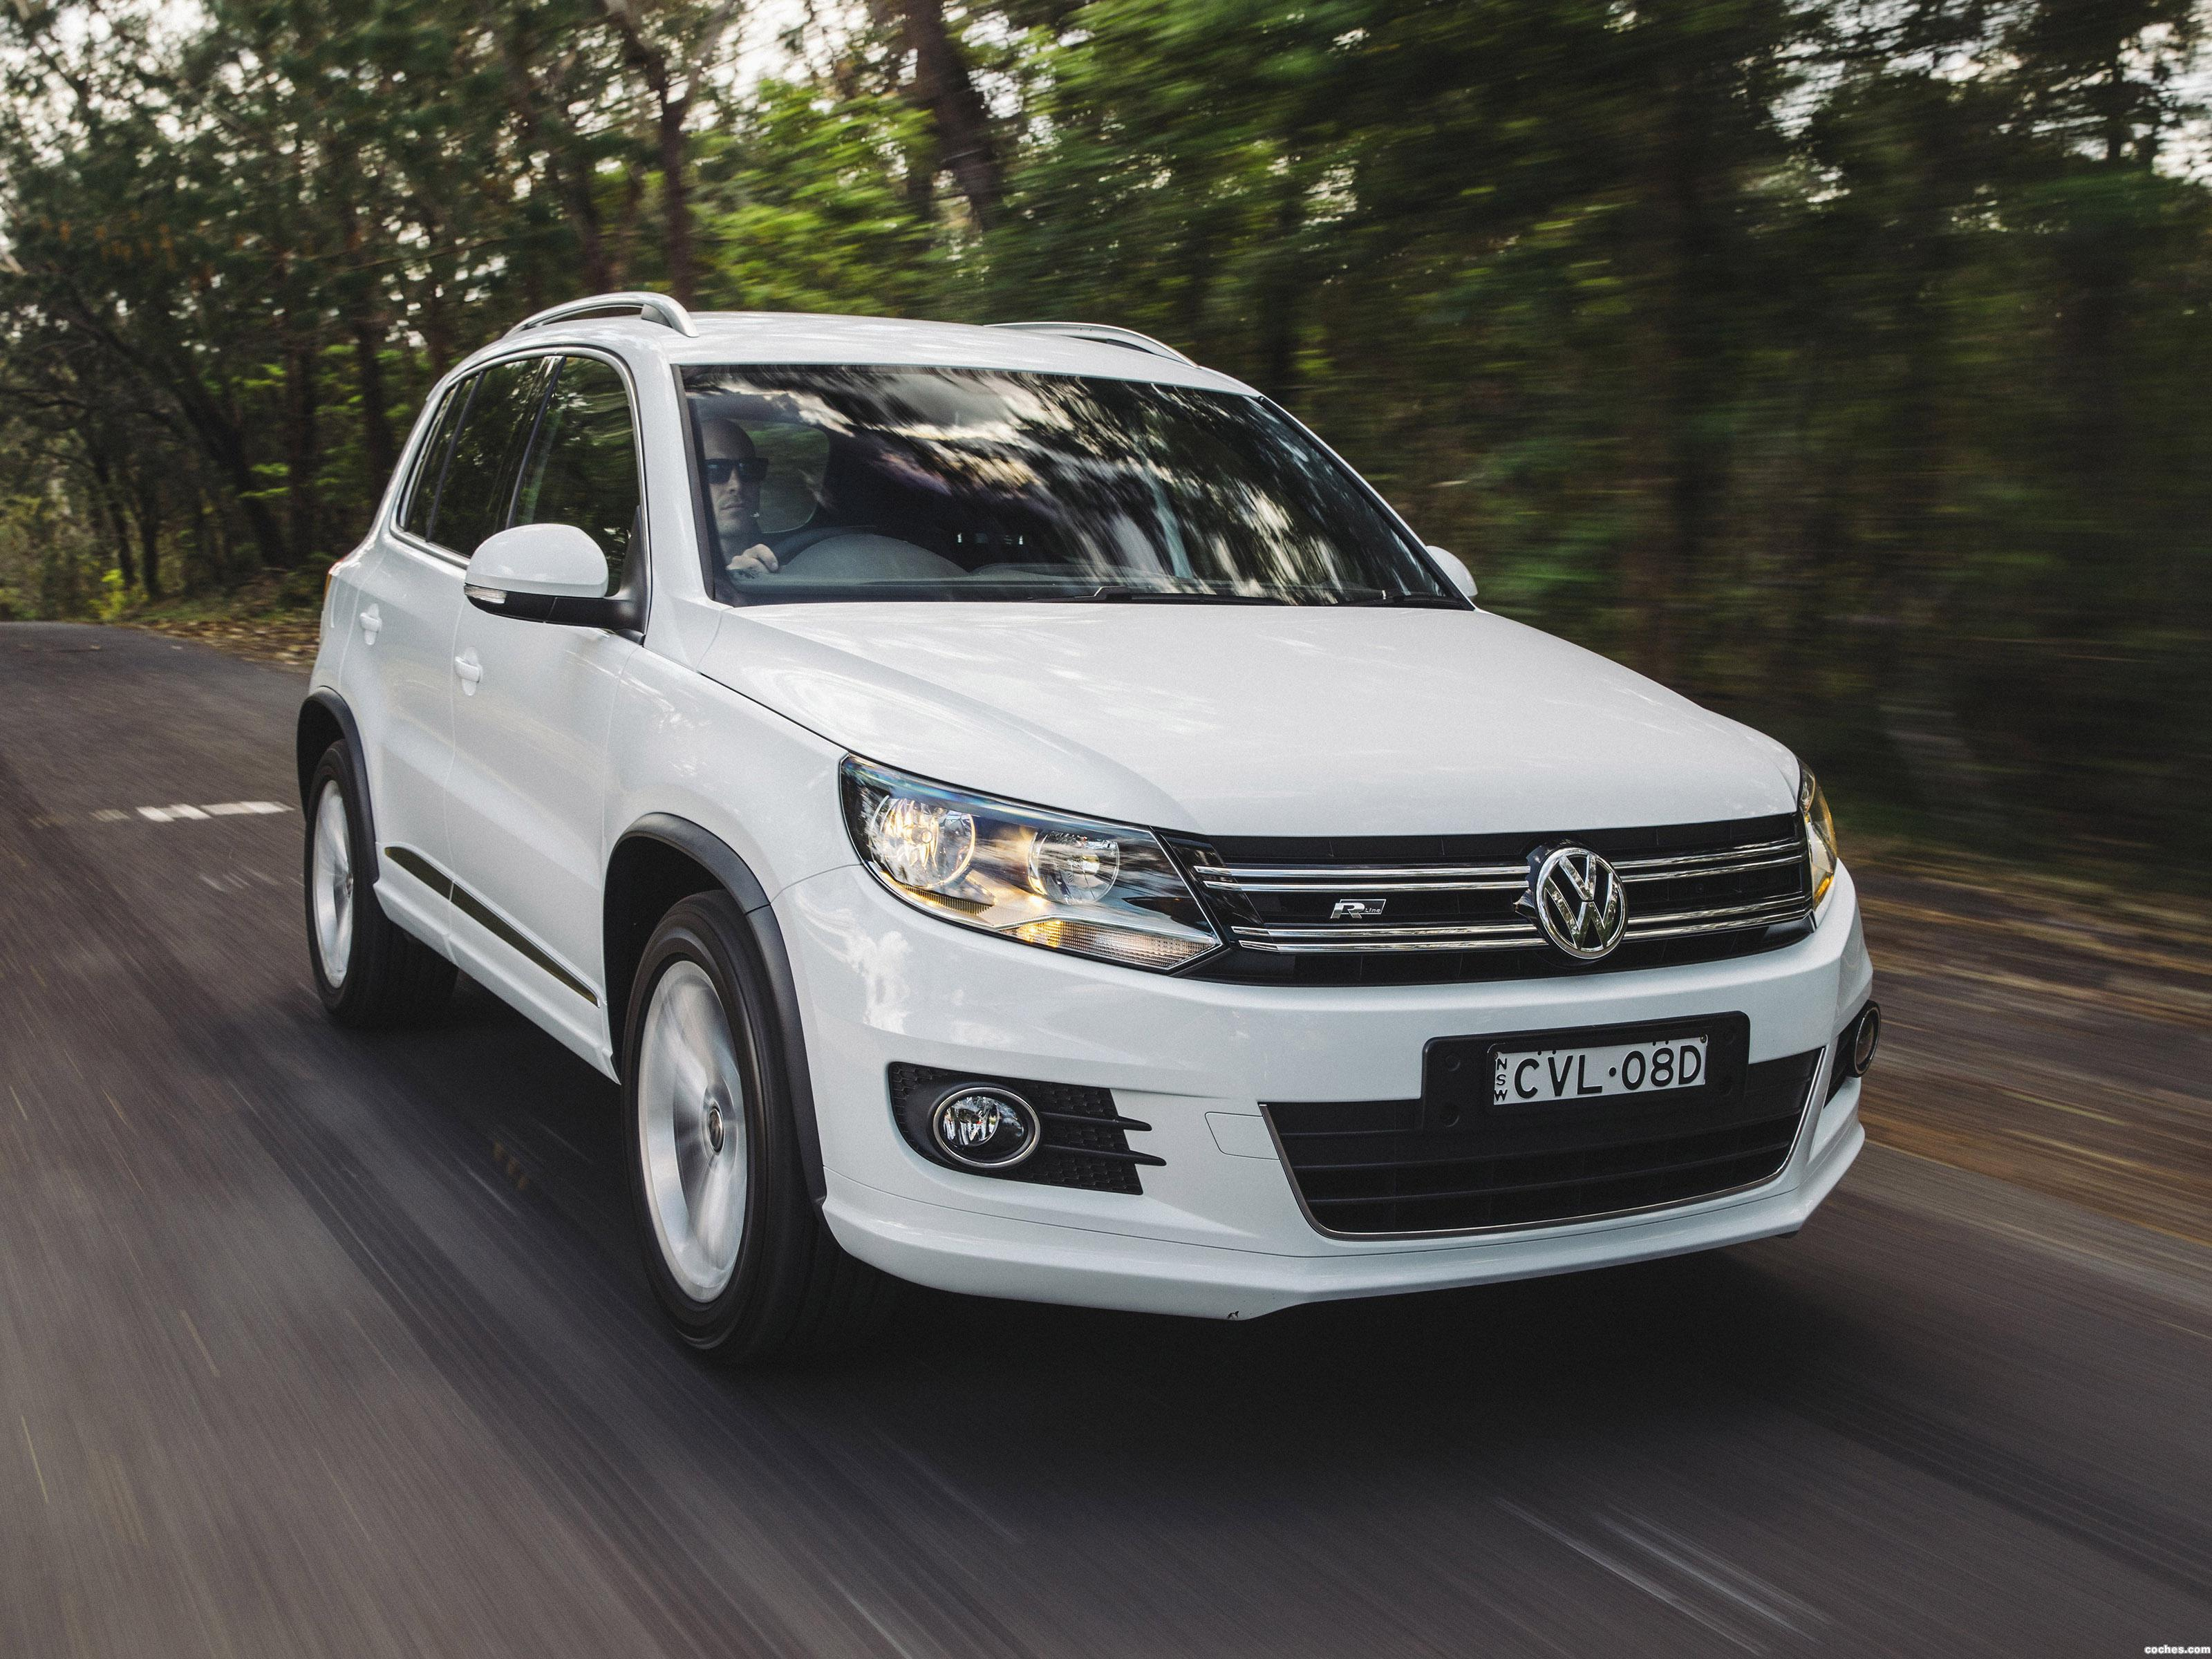 2014 vw tiguan r line australia autos post. Black Bedroom Furniture Sets. Home Design Ideas